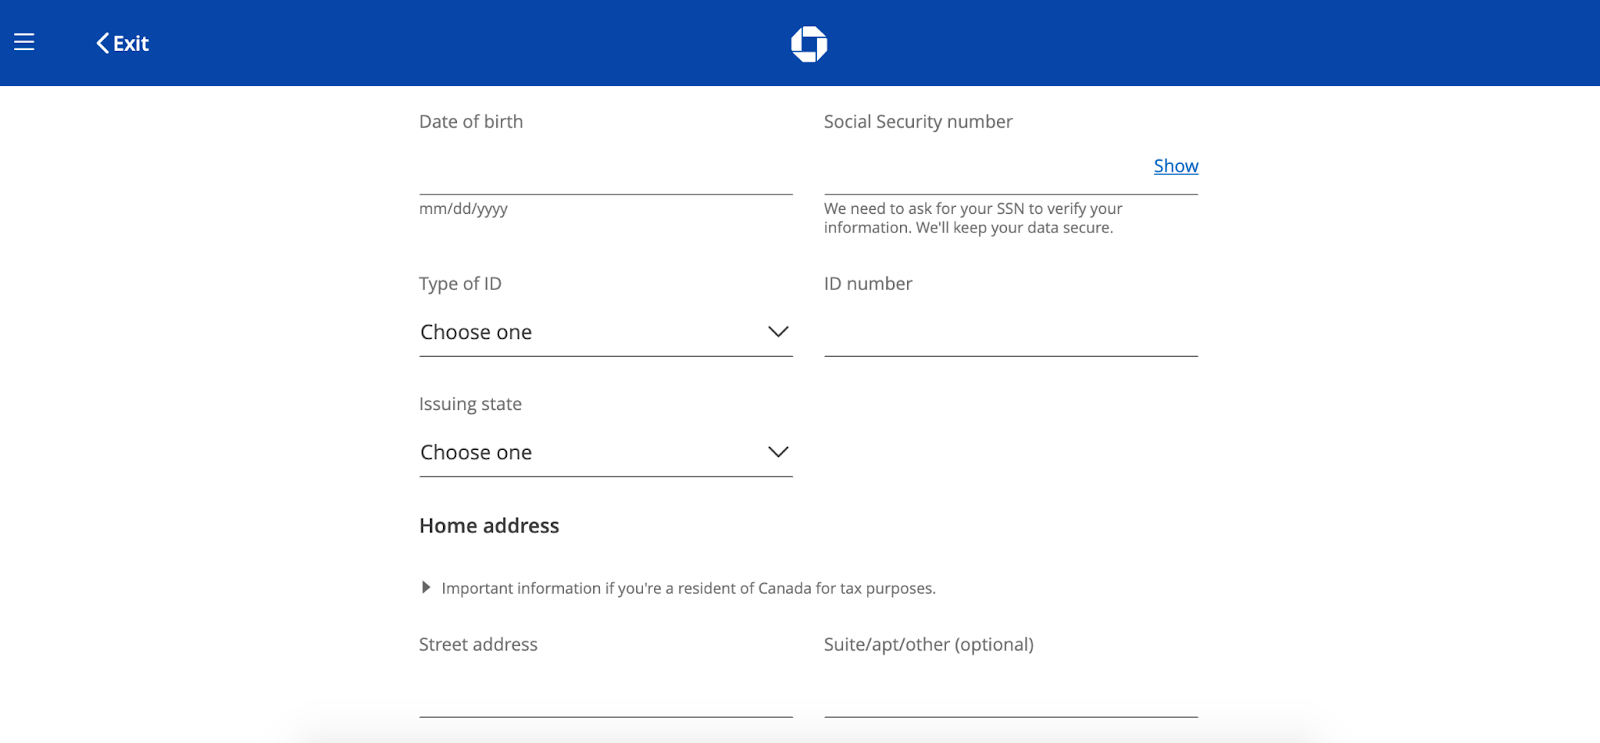 Chase Secure Banking Review: Corporate Banking with Online Convenience - Add identification info